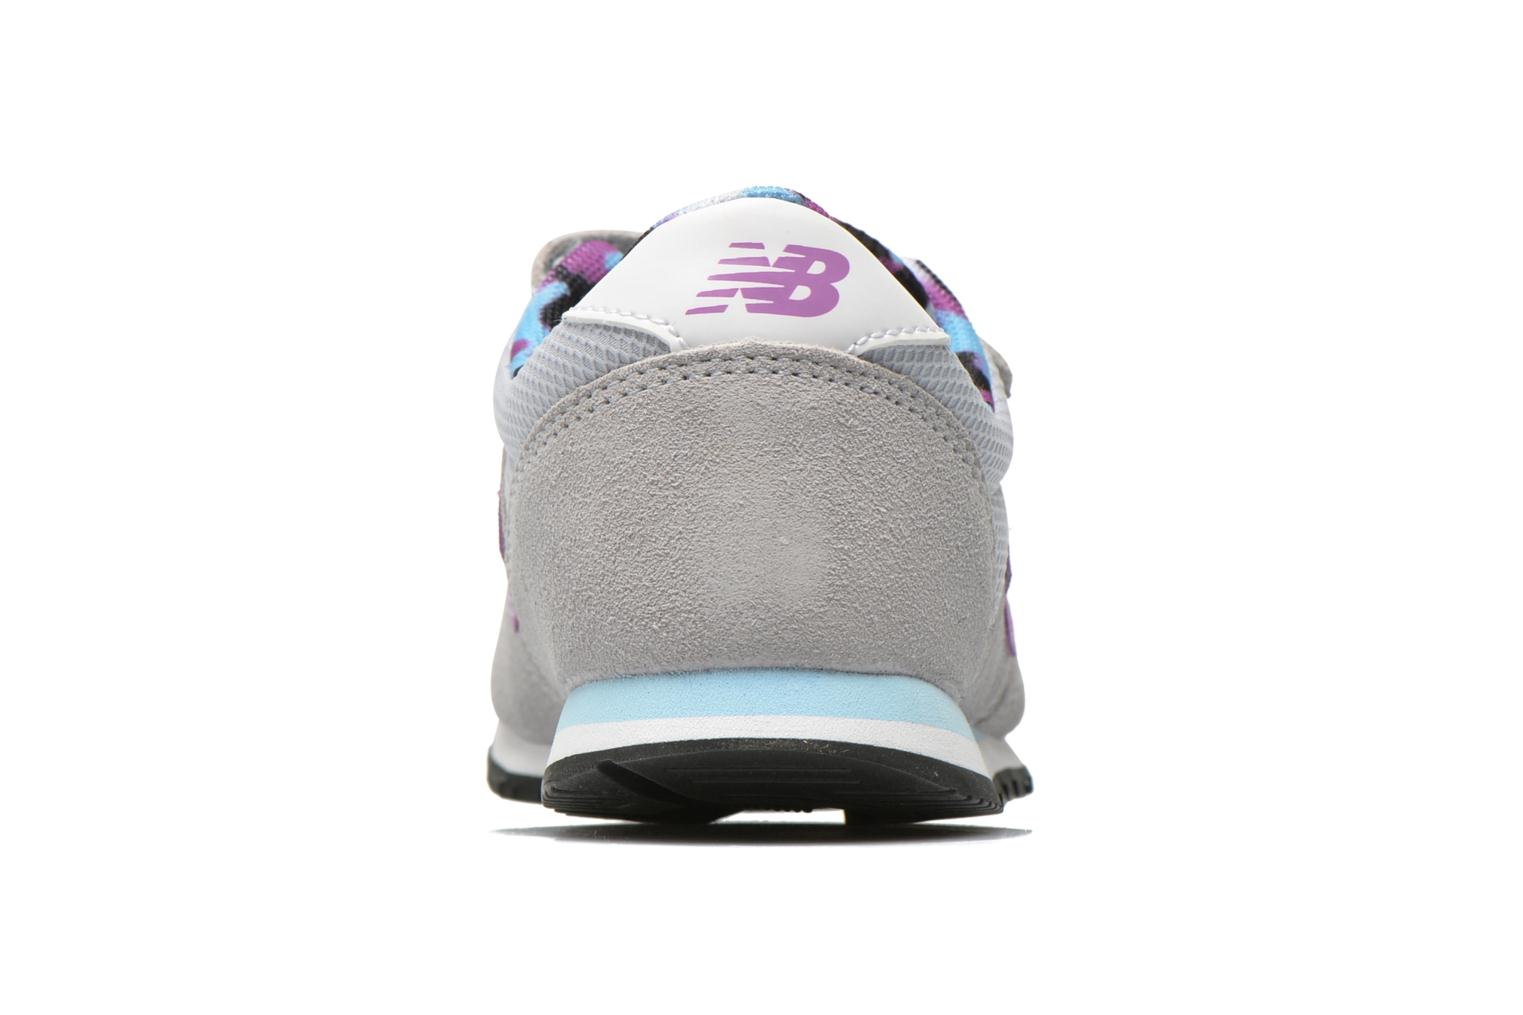 KE420 J Grey/purple